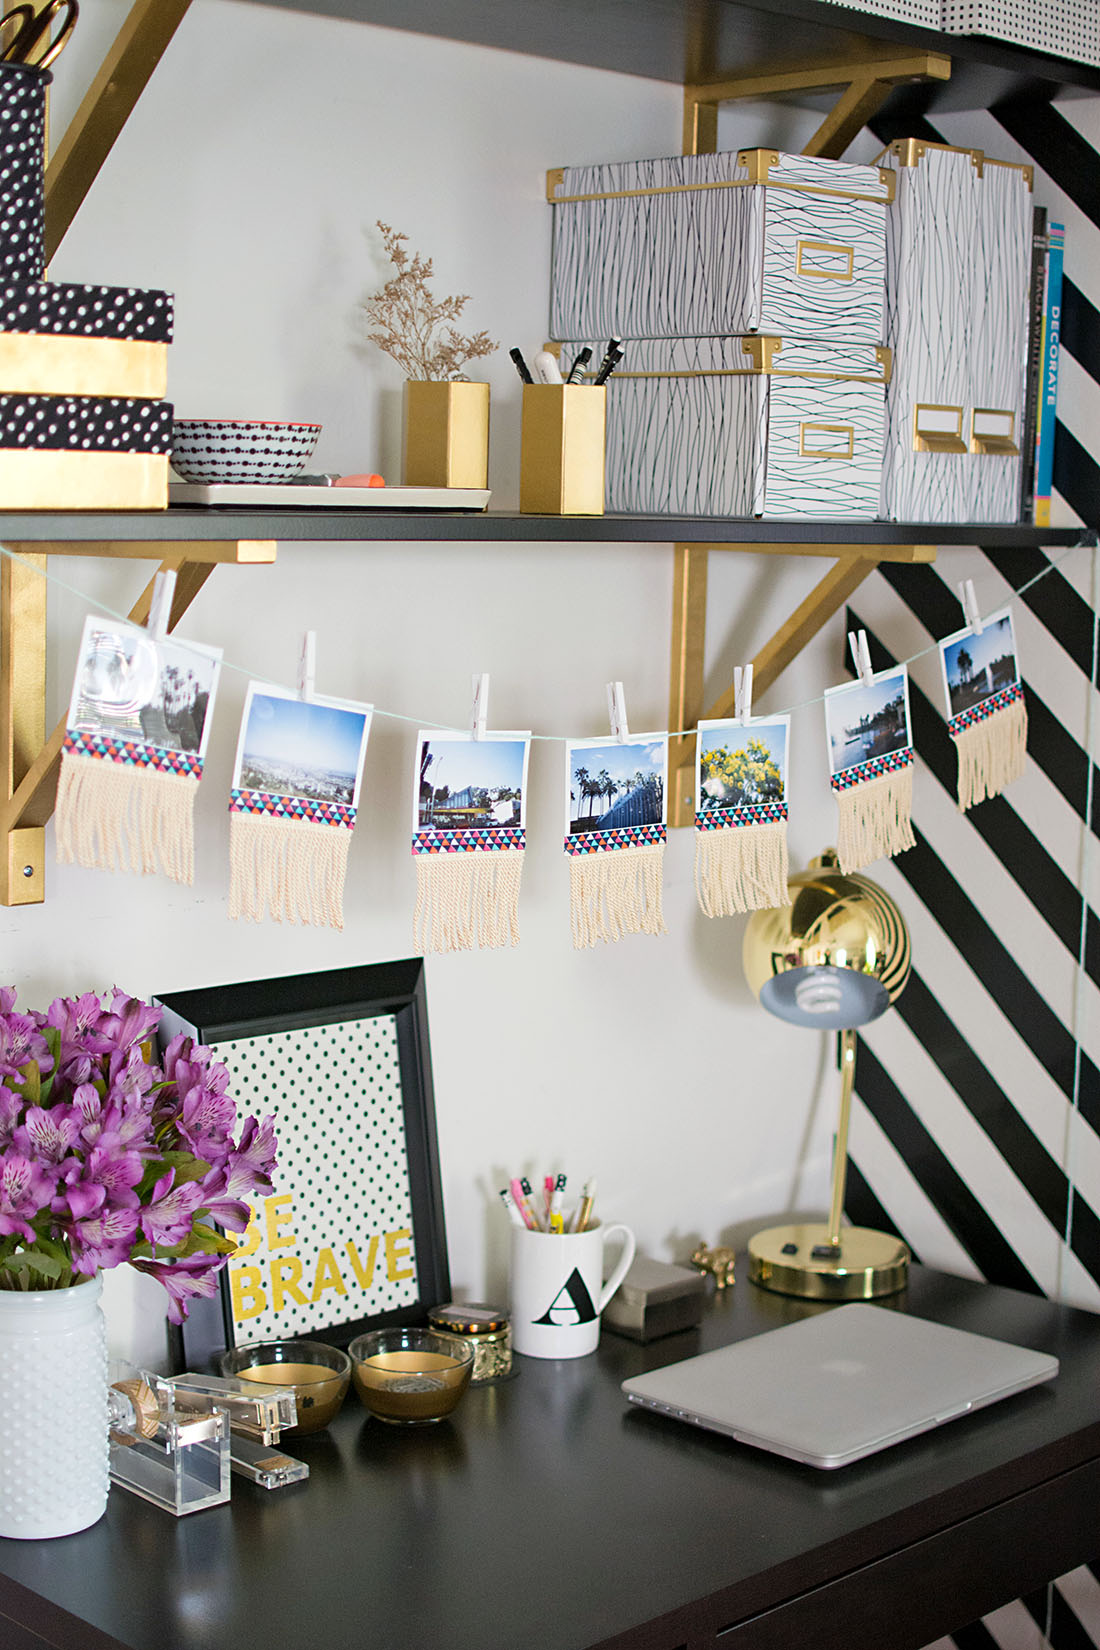 Personalize Your Workspace With Custom Decorations